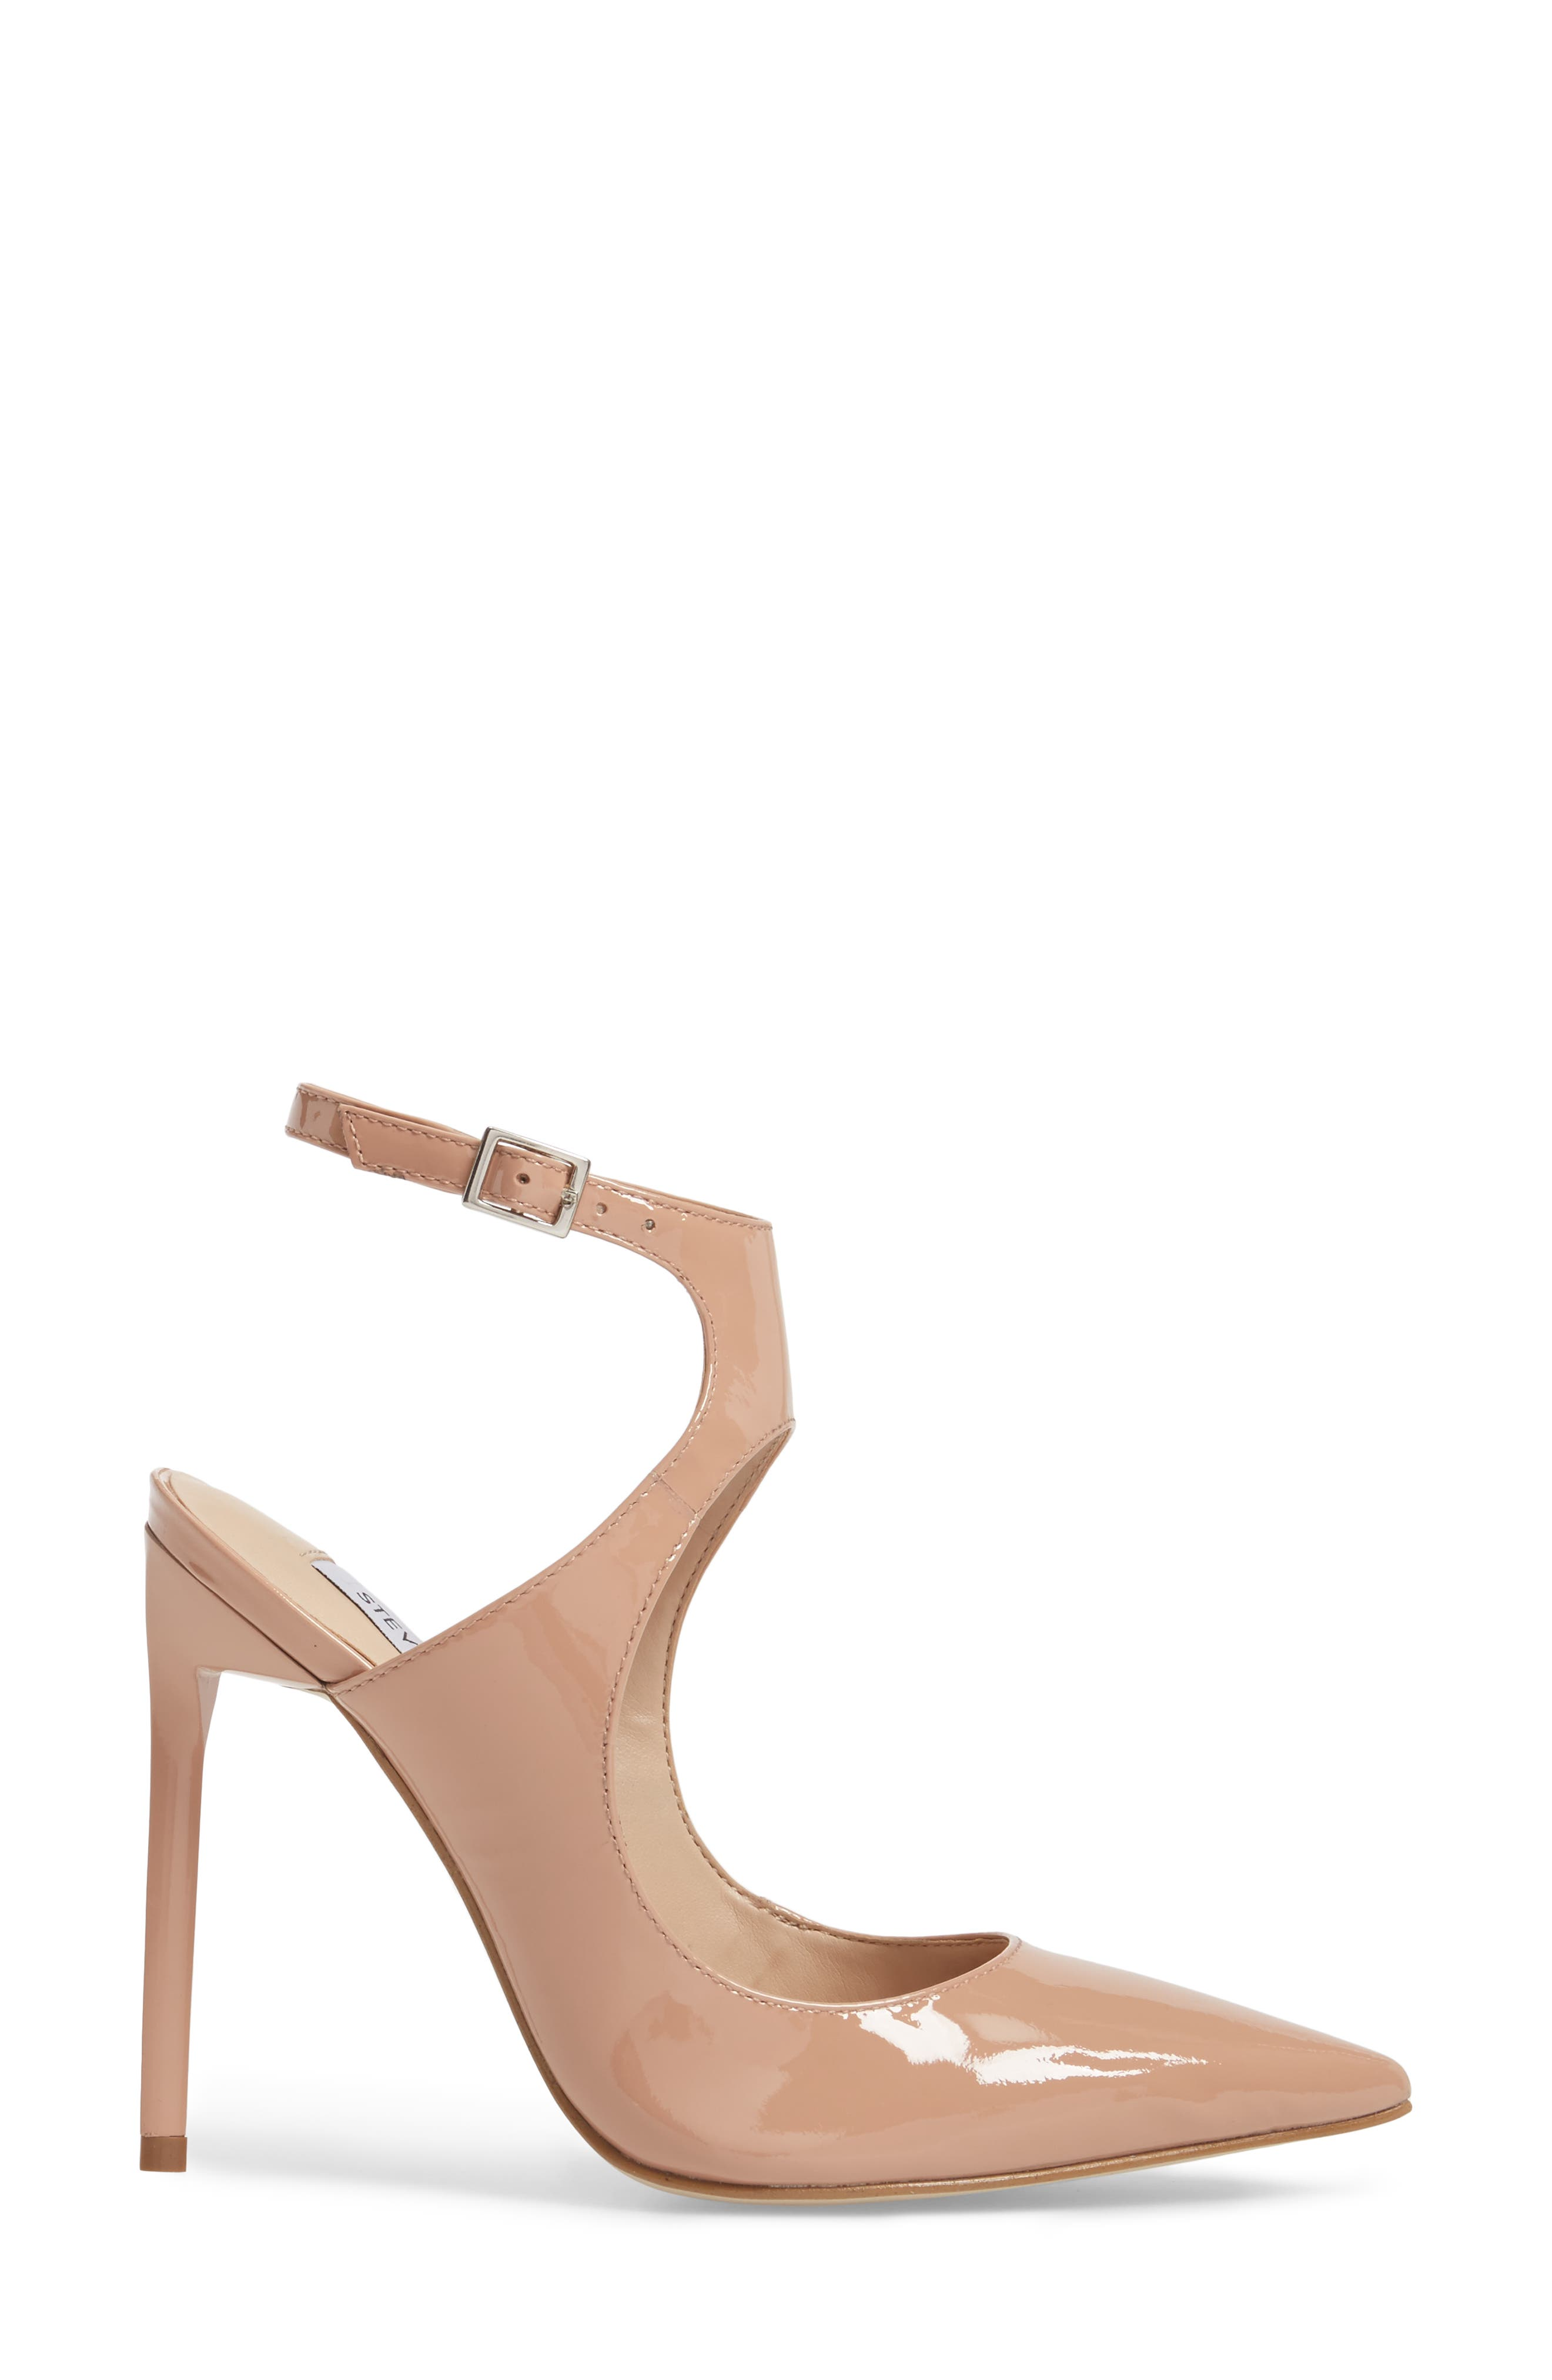 Prism Cutout Pump,                             Alternate thumbnail 8, color,